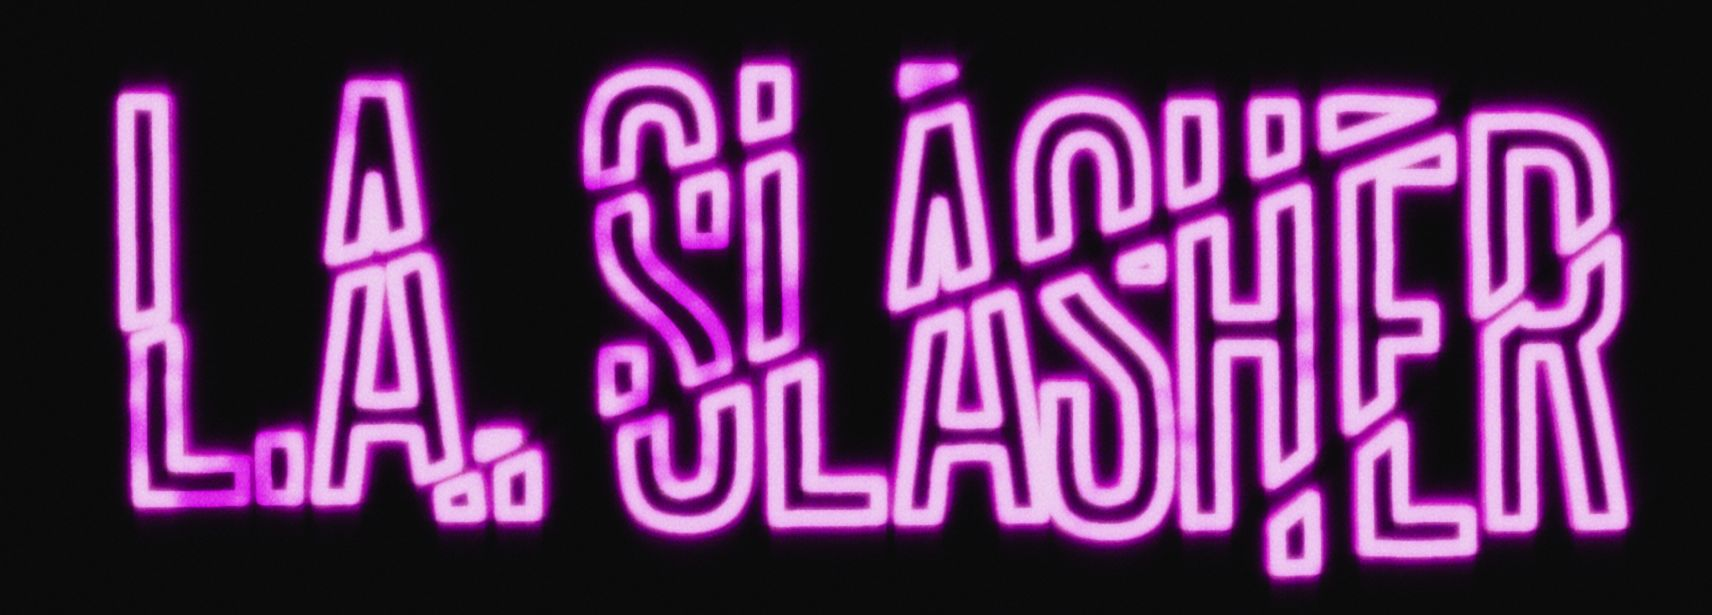 tumblr_static_la_slasher_logo_result